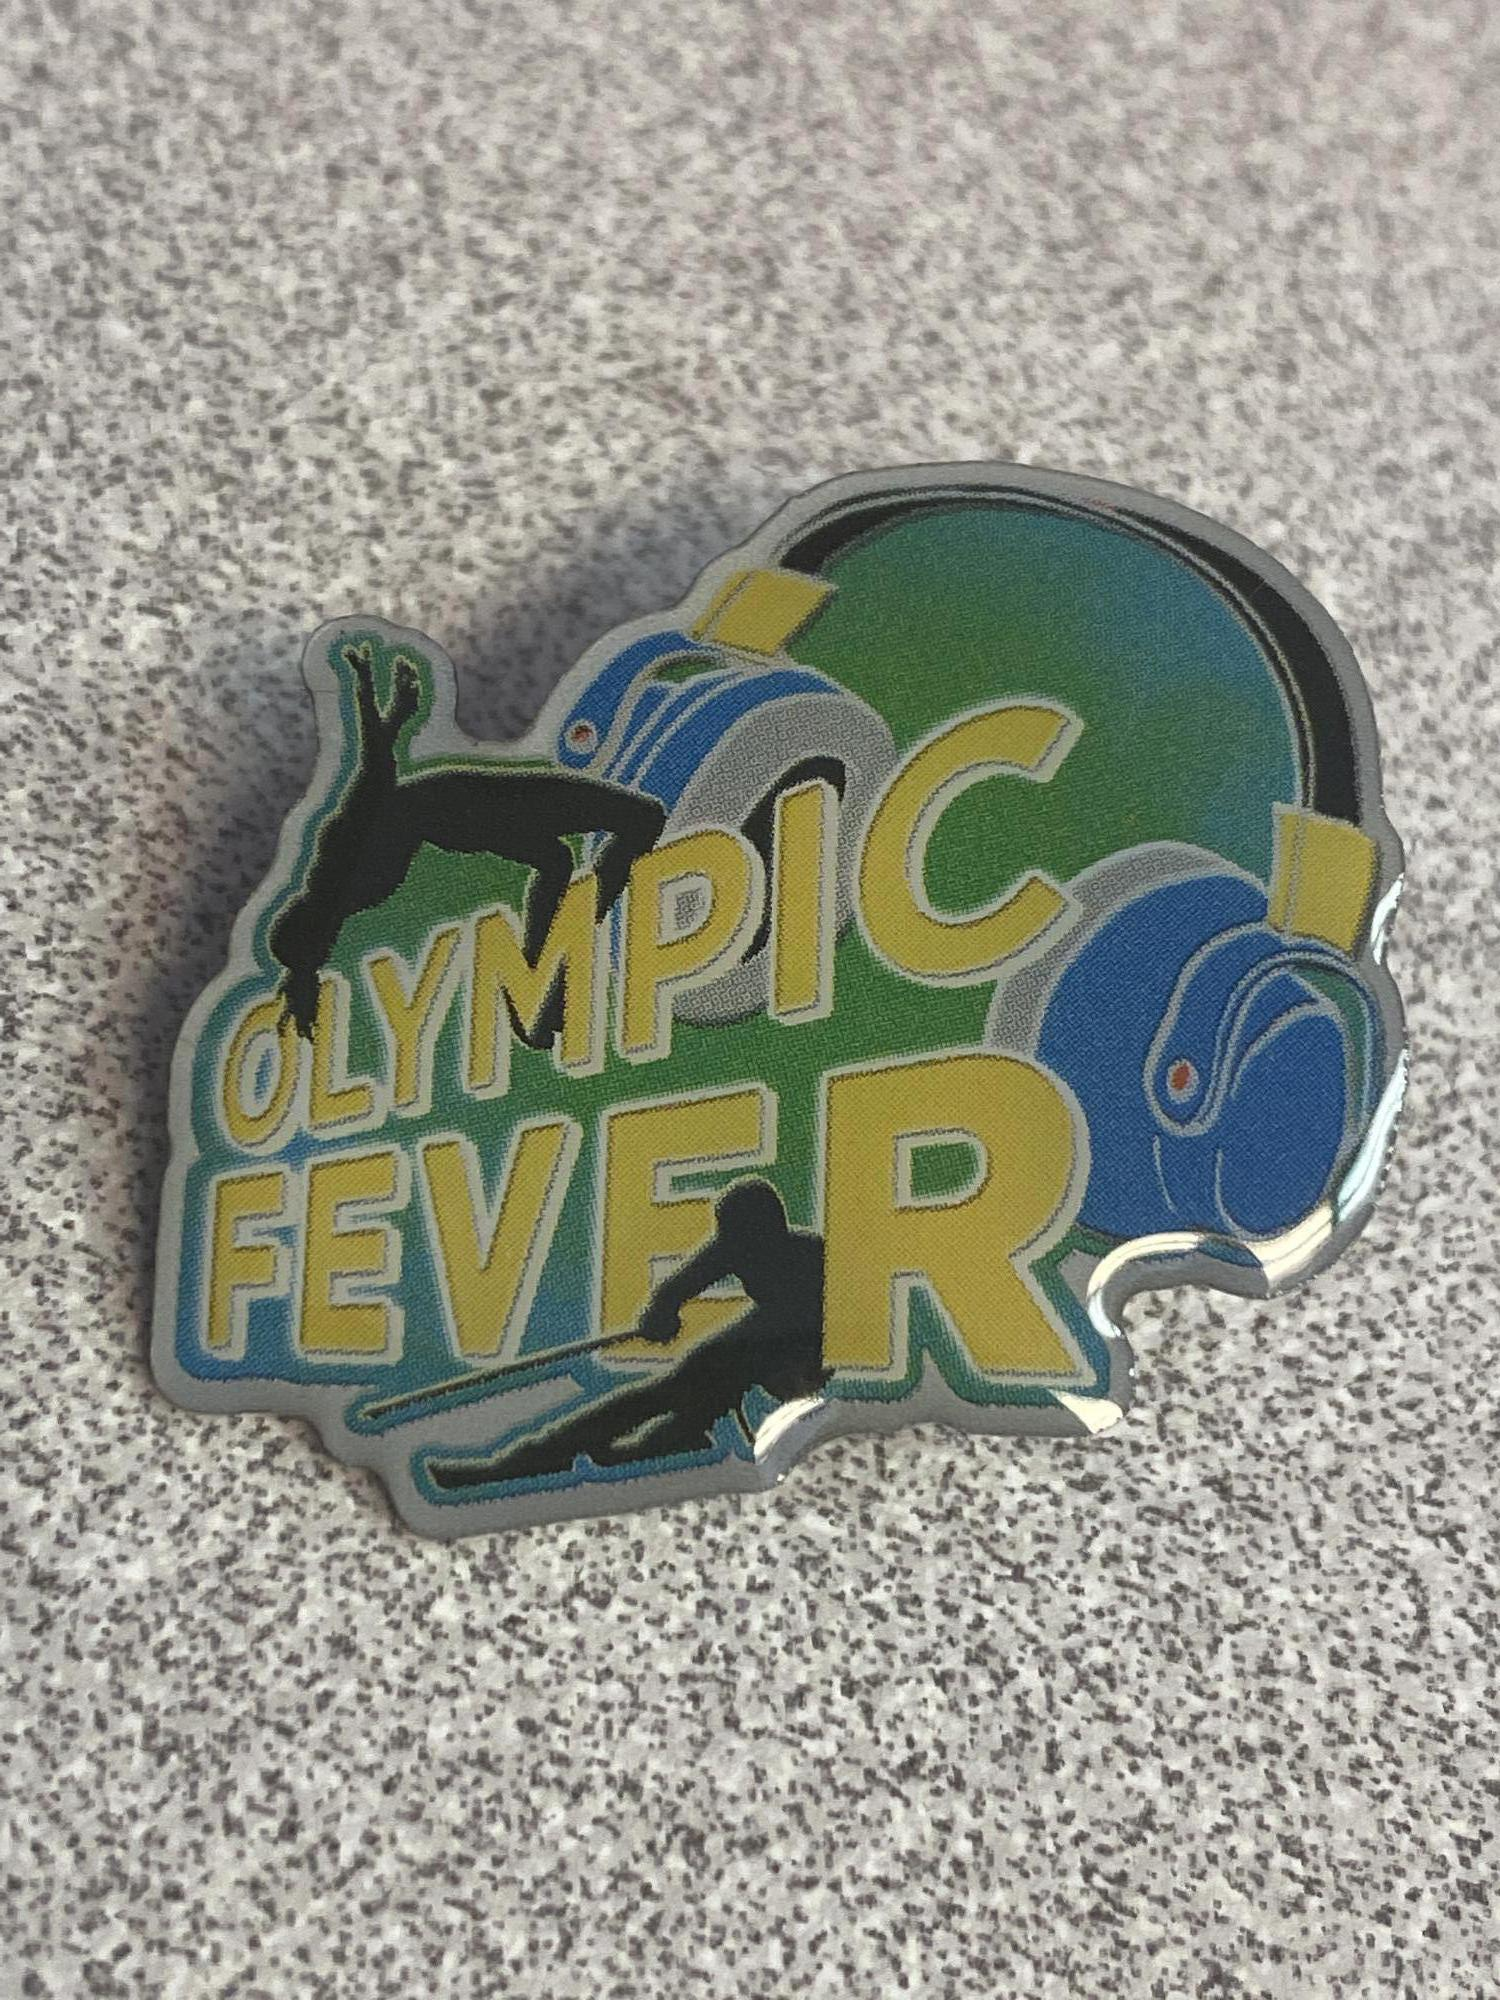 Olympic Fever Podcast